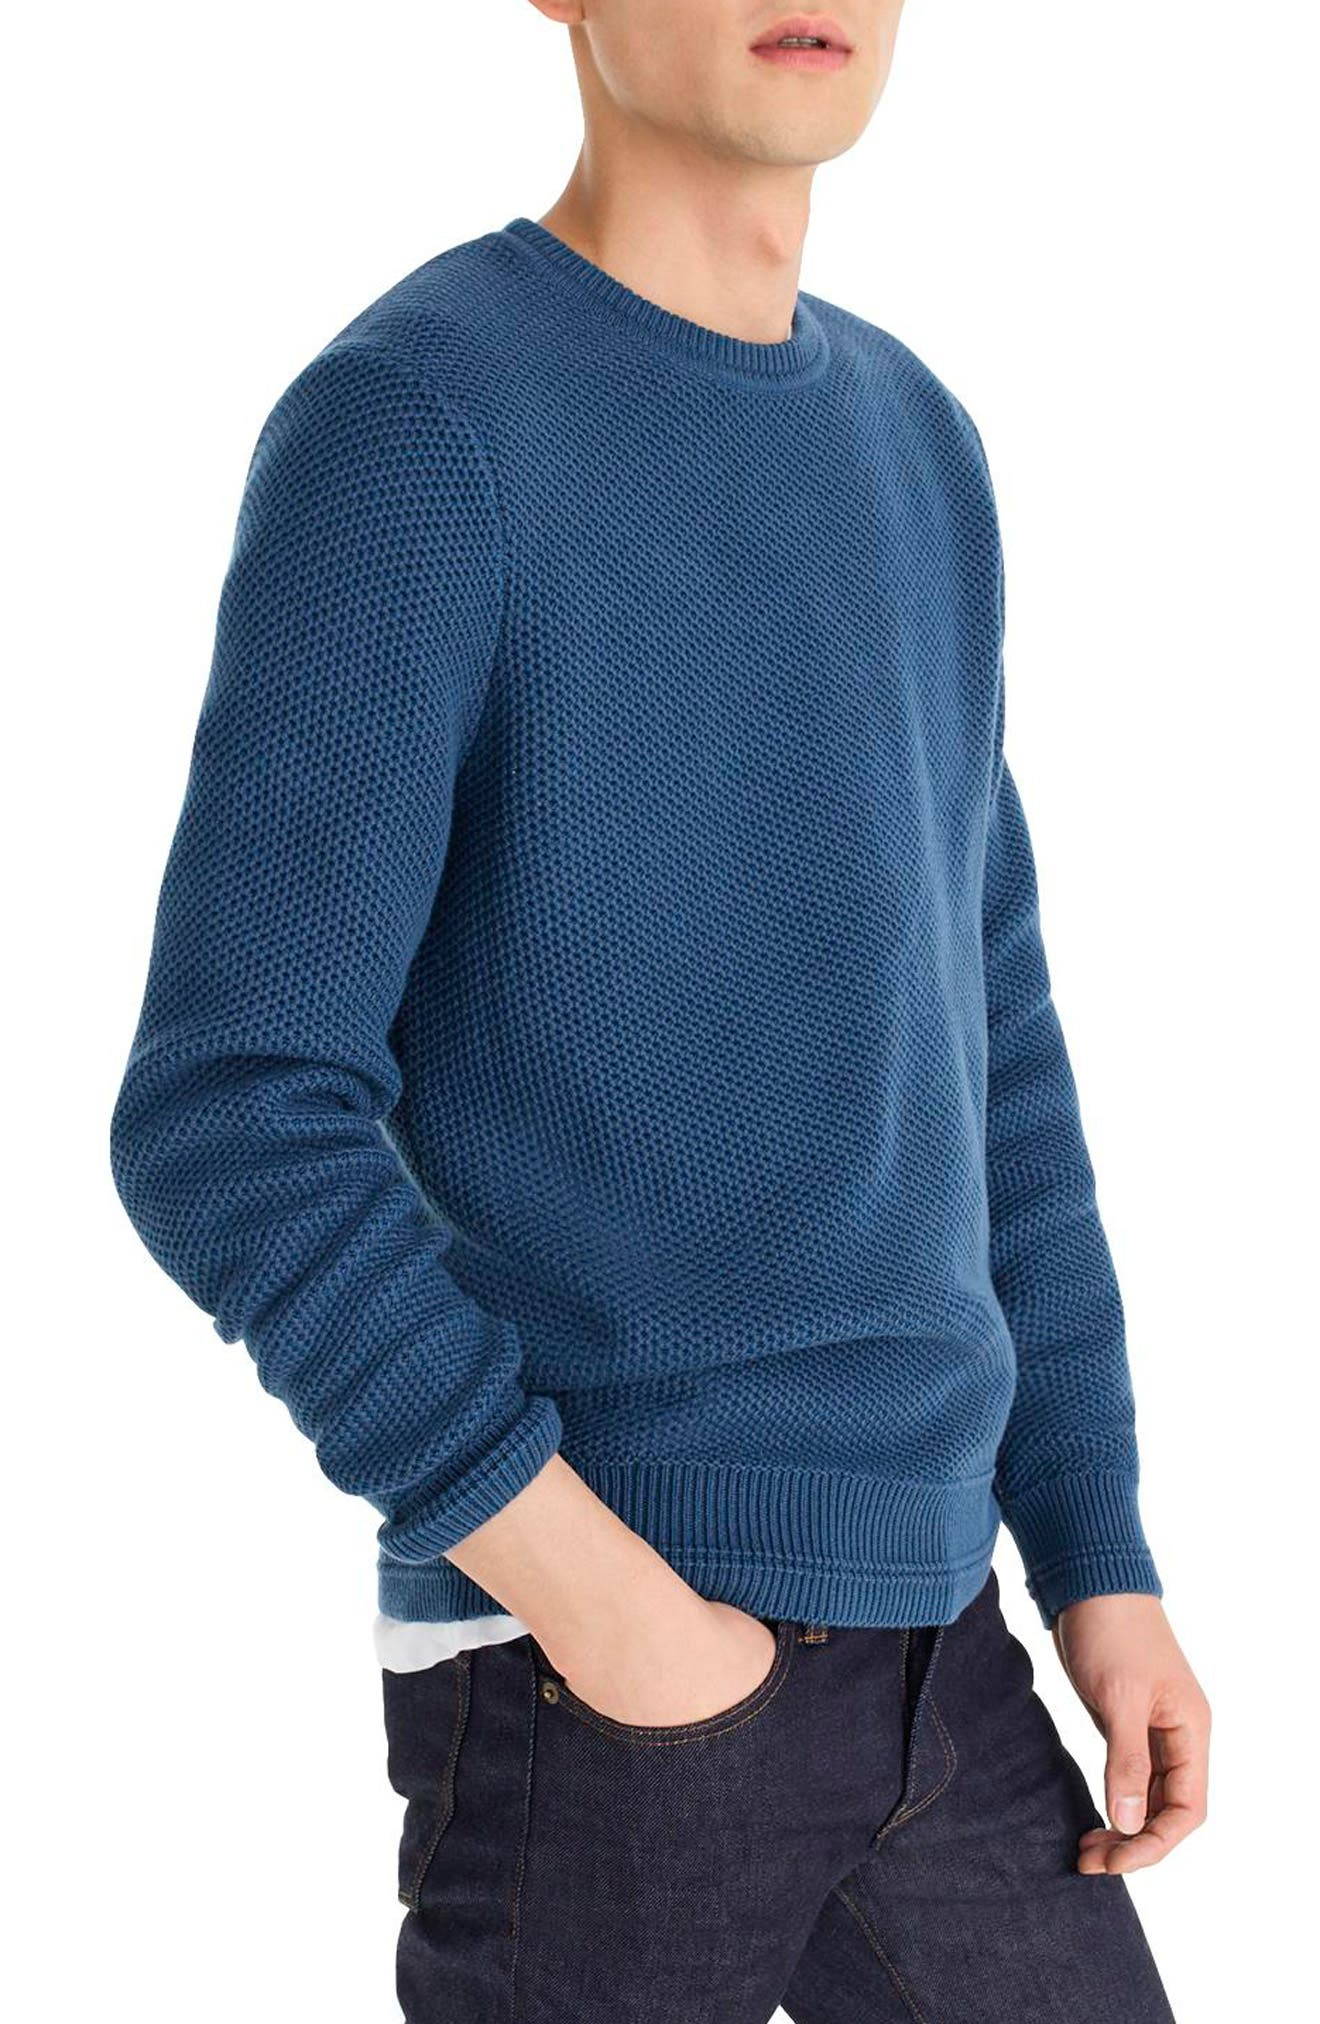 Honeycomb Cotton Crewneck Sweater,                             Alternate thumbnail 3, color,                             400